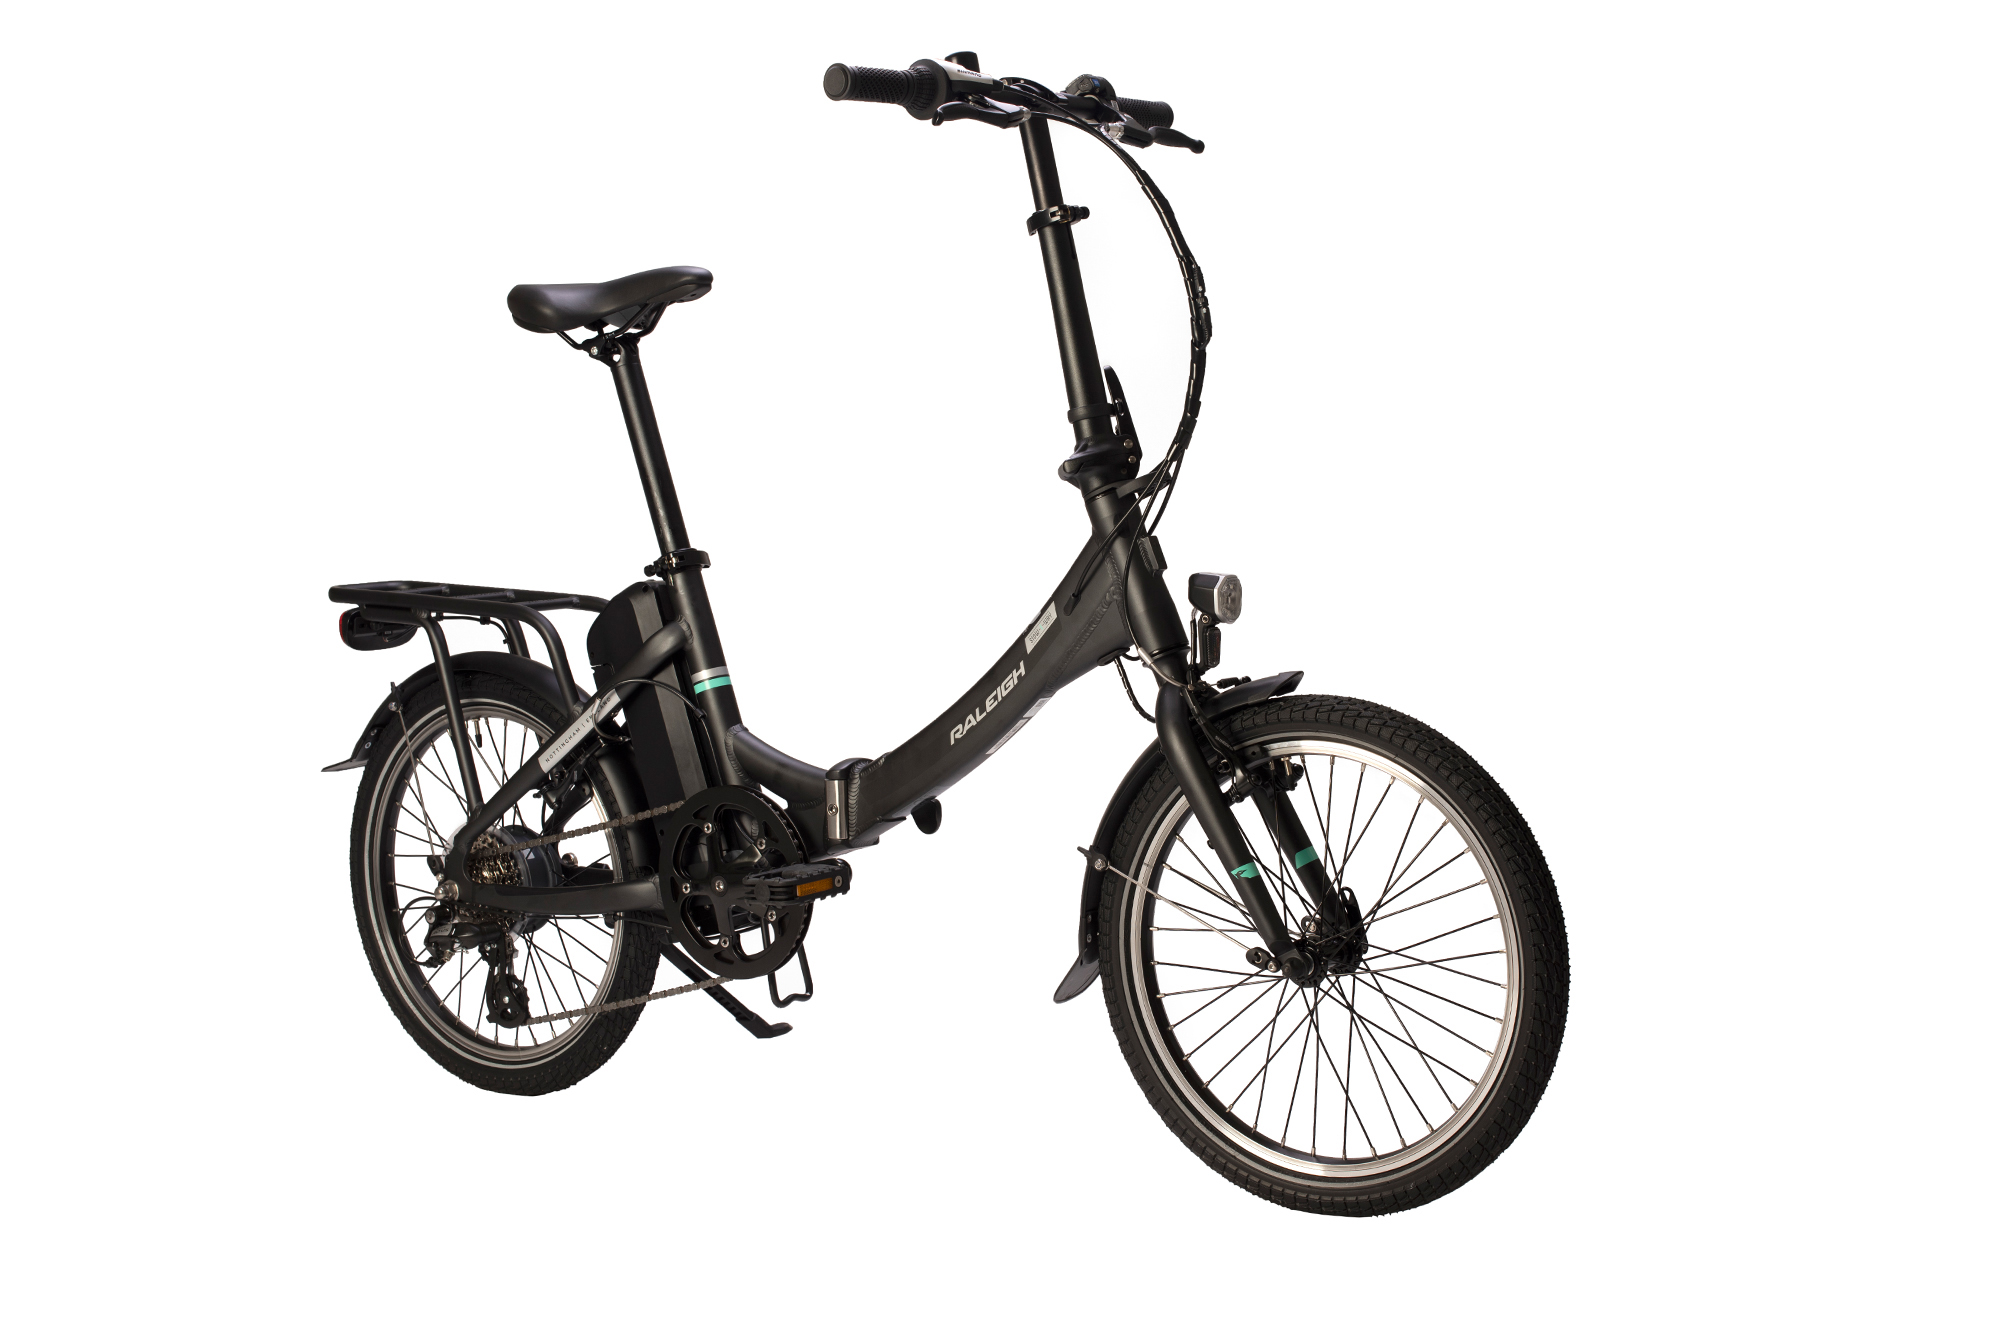 Front view of the Raleigh Stow-E-way folding electric bike